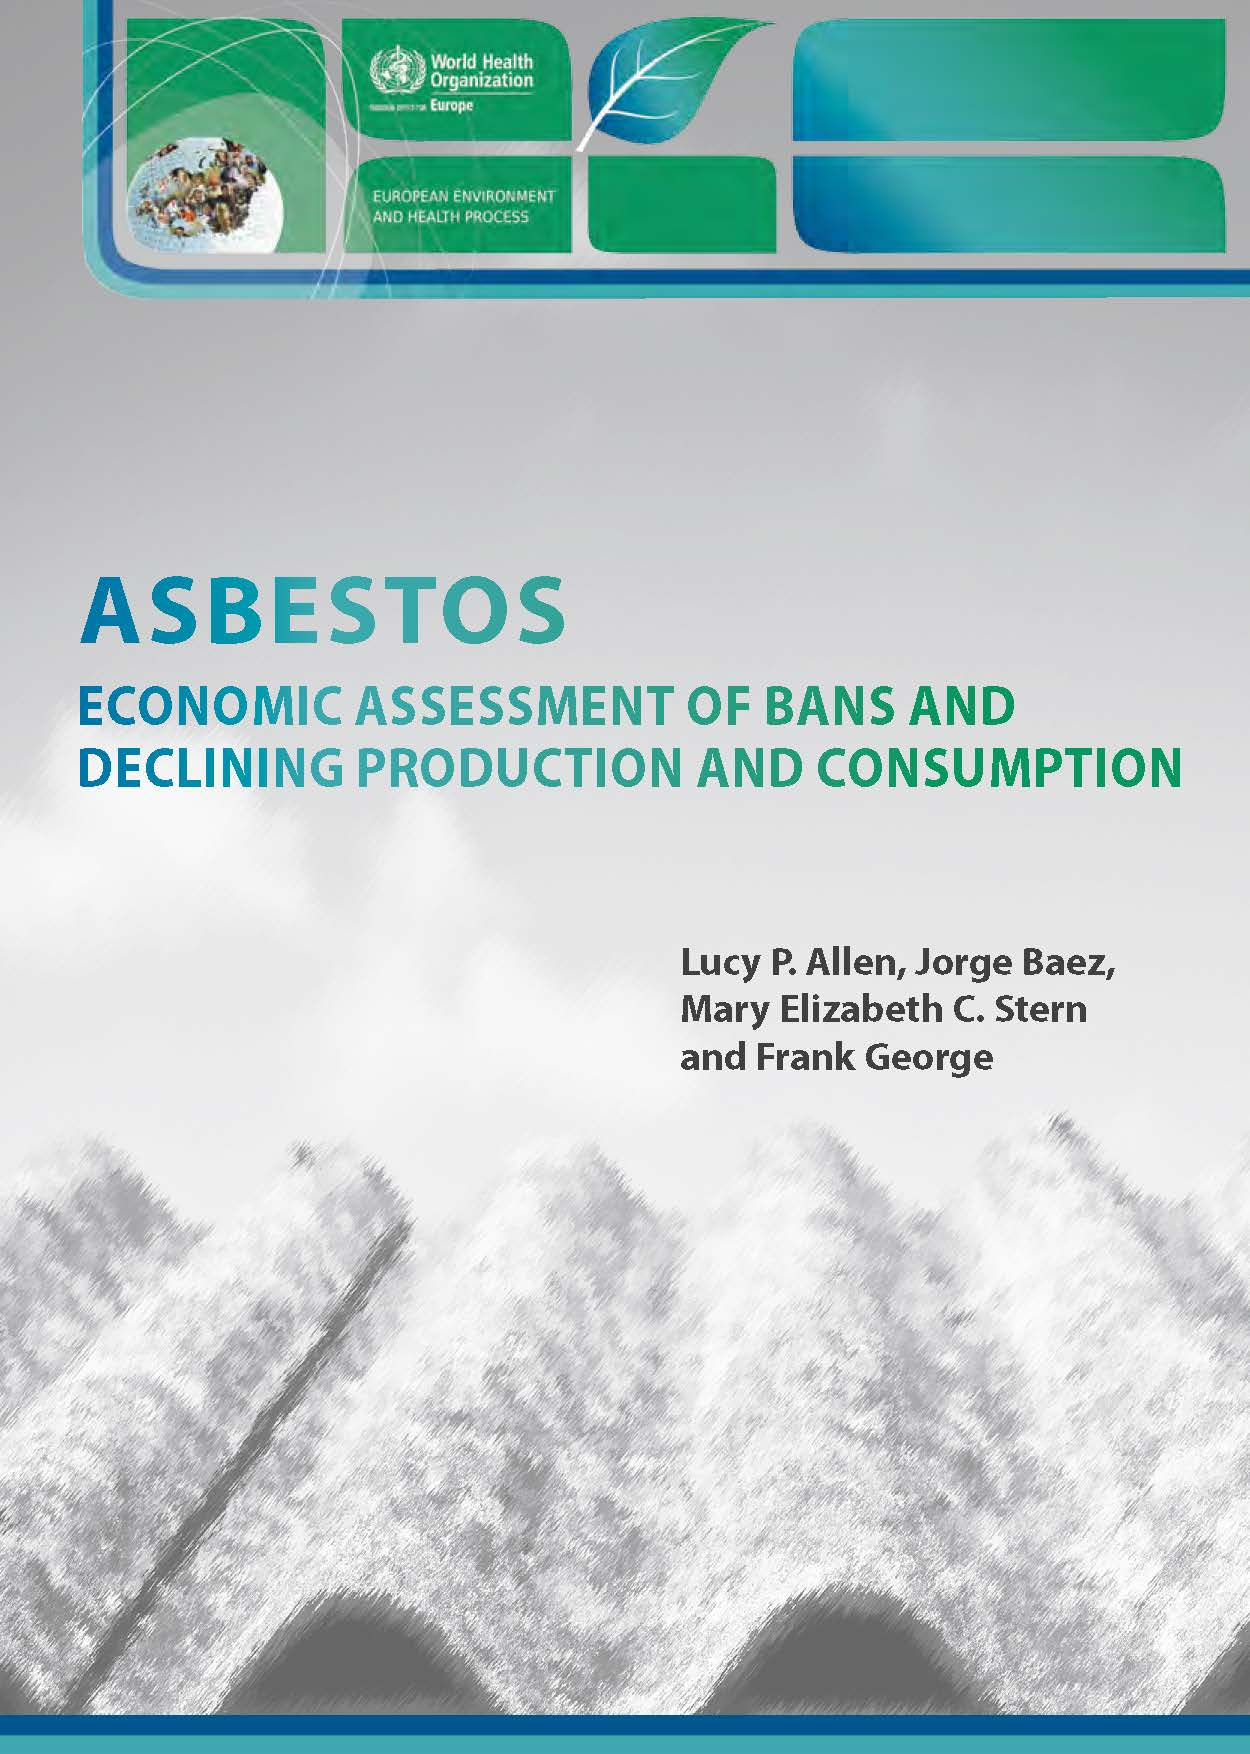 Asbestos: Economic Assessment of Bans and Declining Production and Consumption